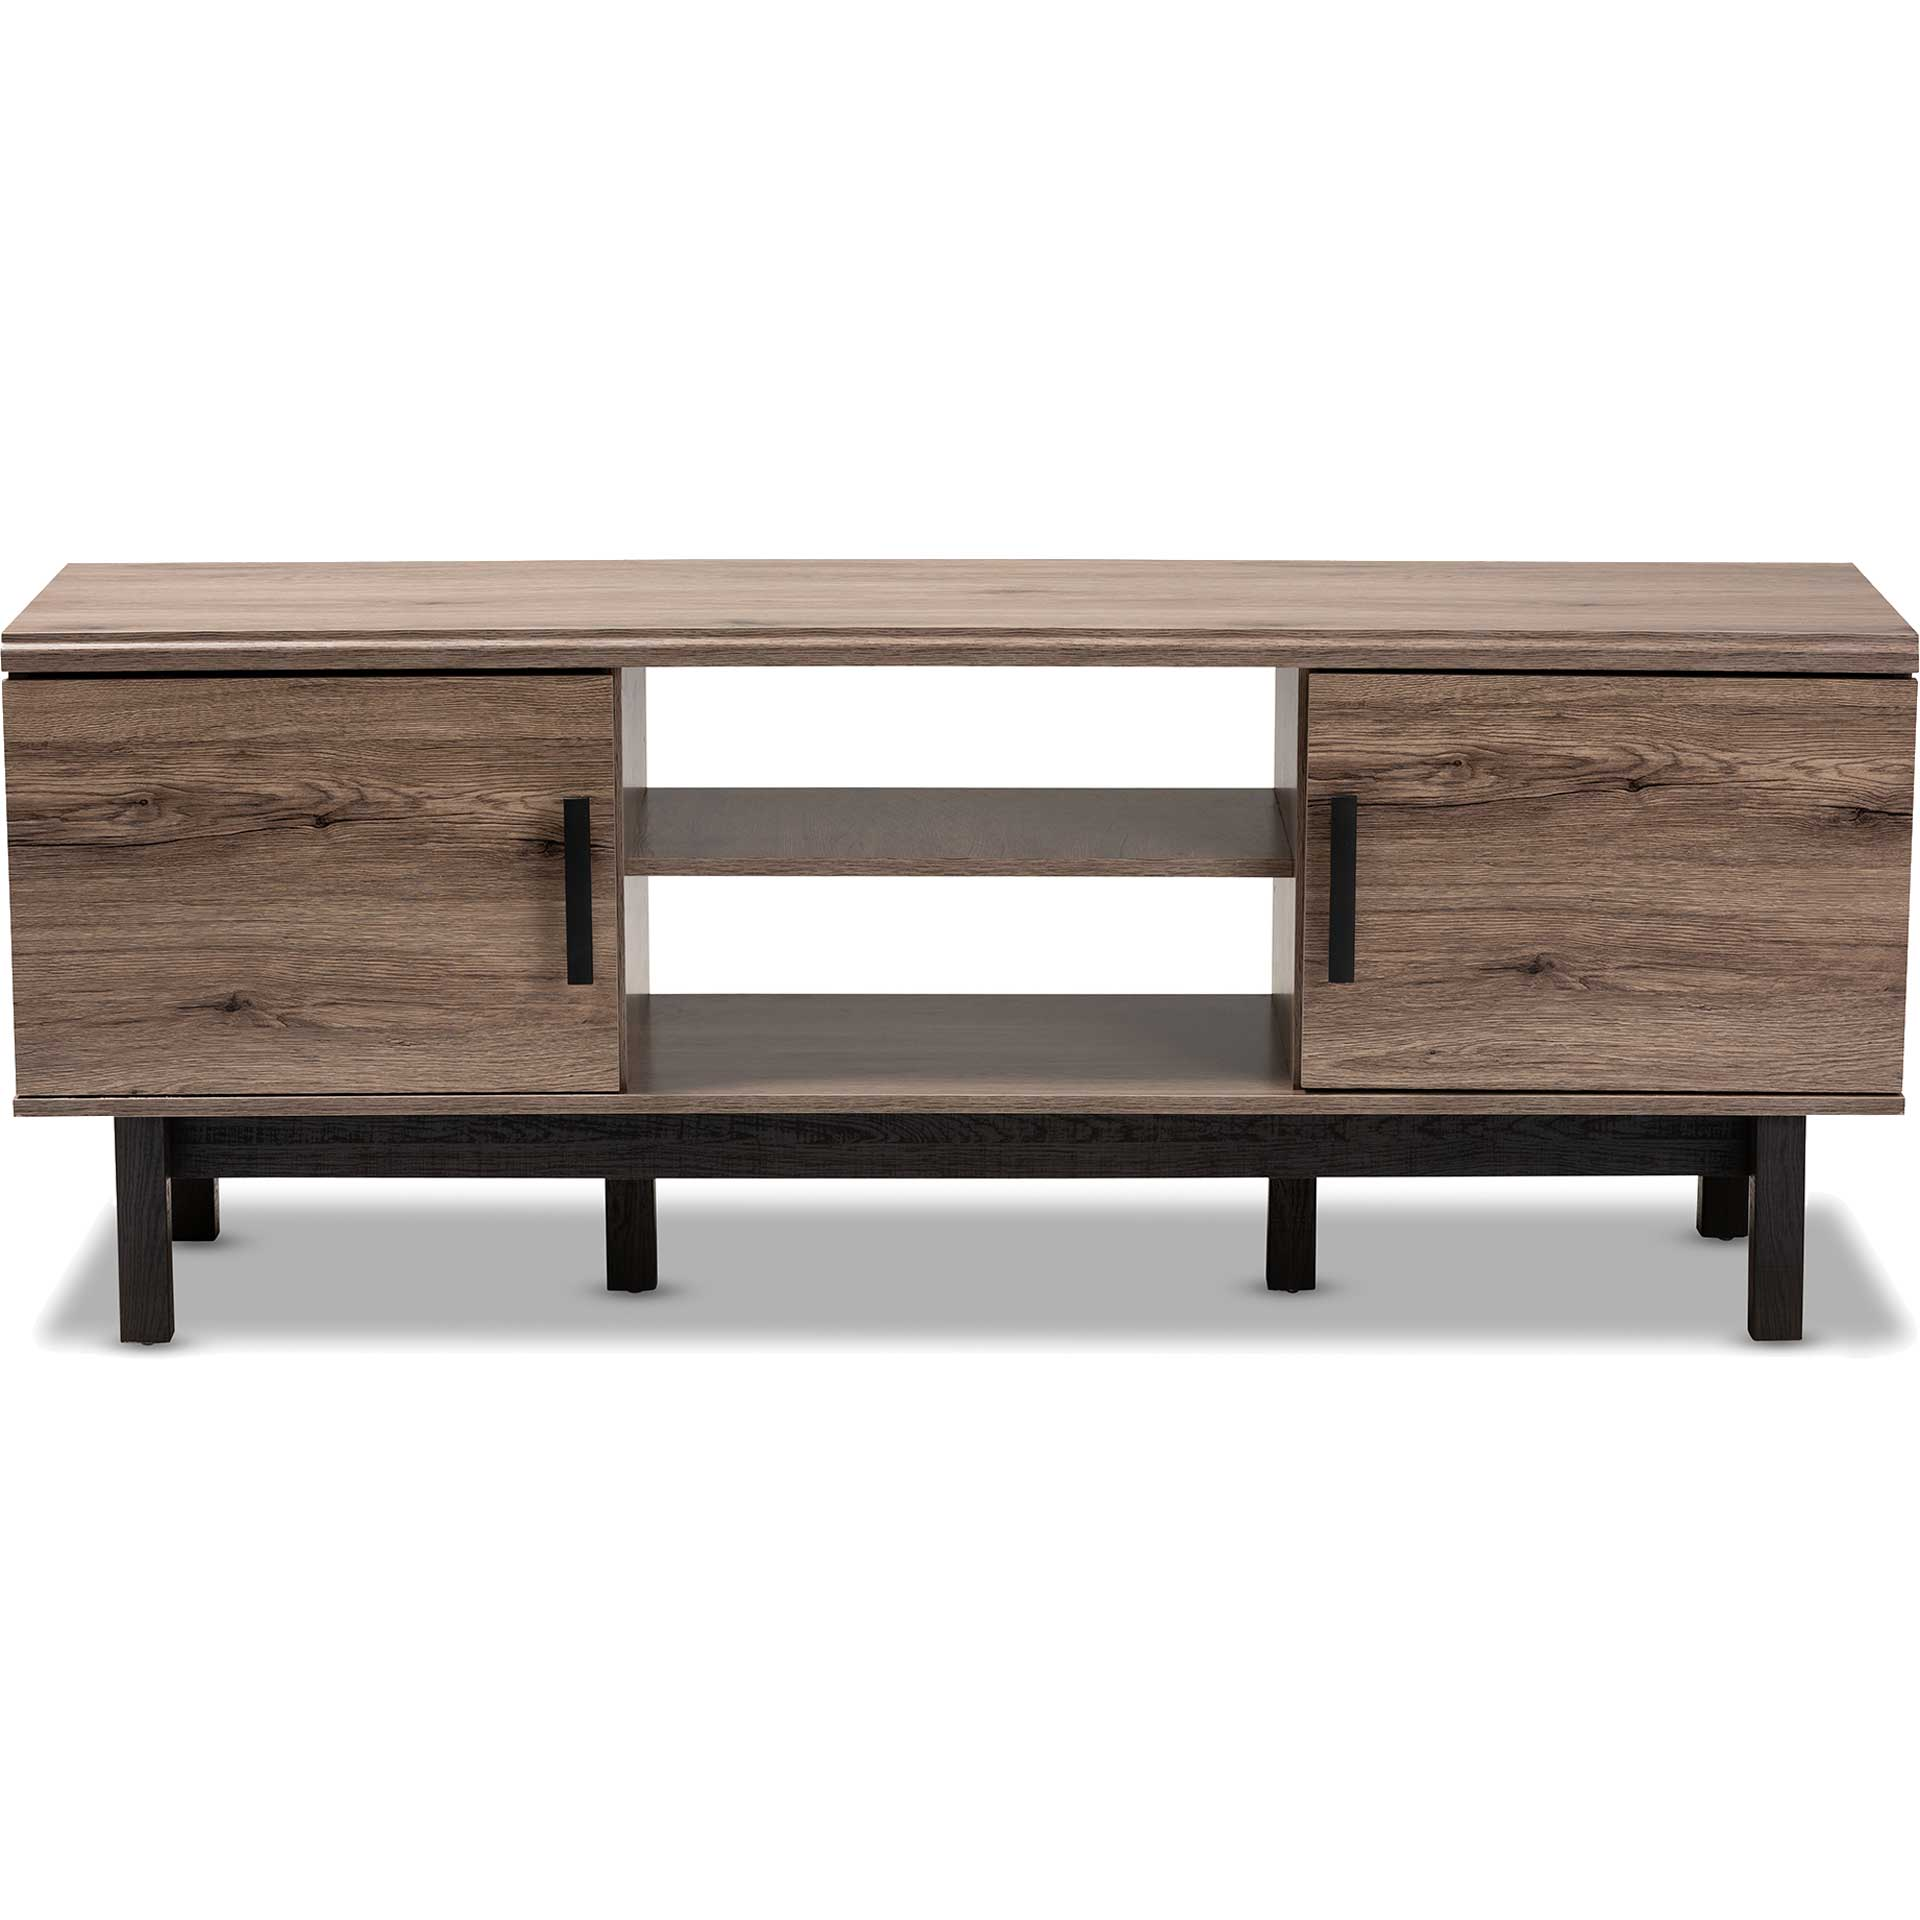 Ariel 2-Door TV Stand Oak/Black